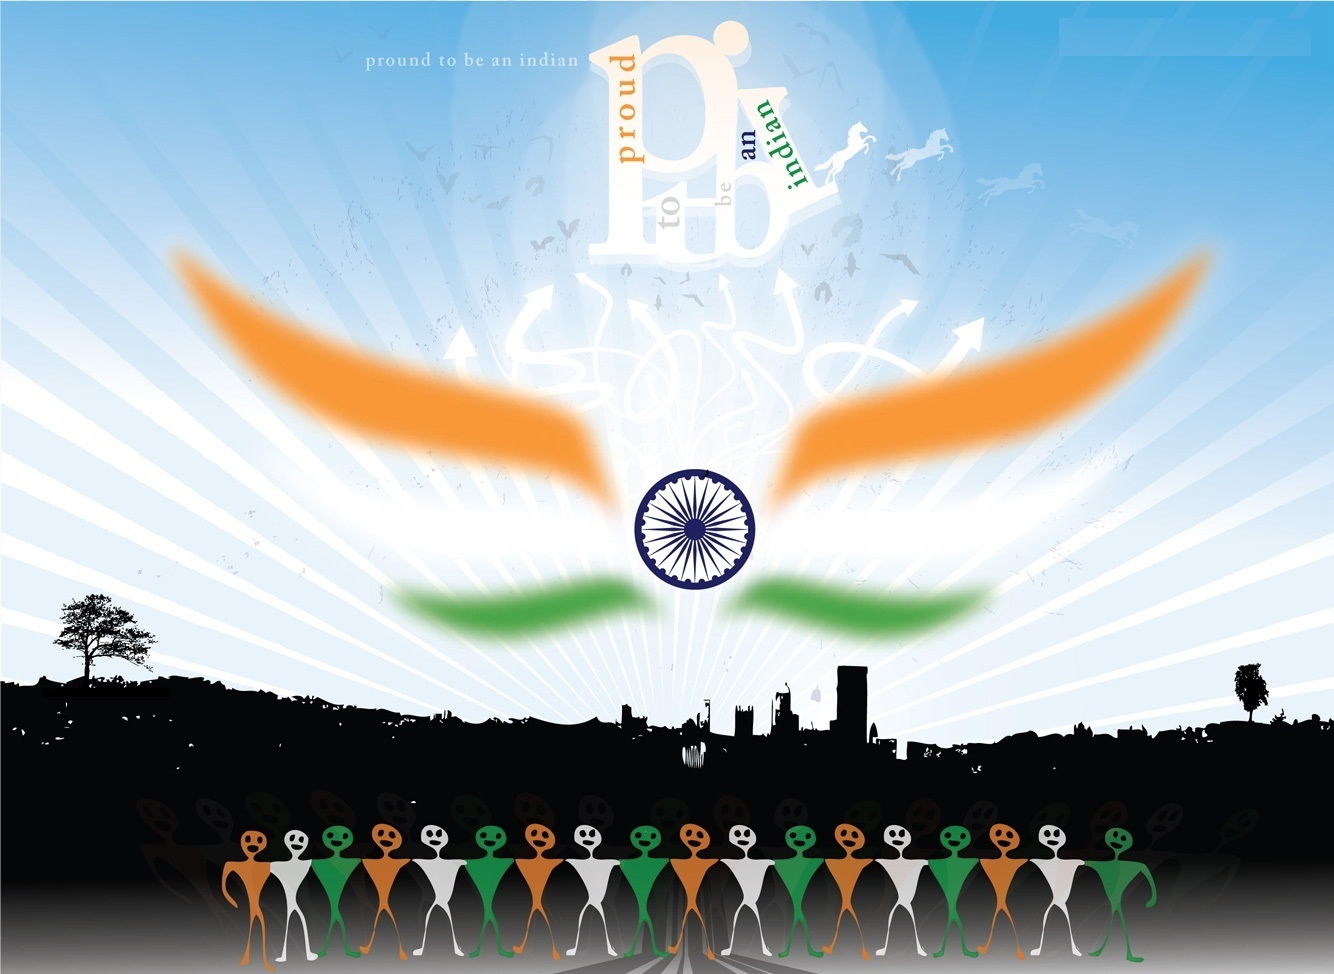 Happy Independence Day Wallpapers Photos Images Pics 15 August 2015 1334x974